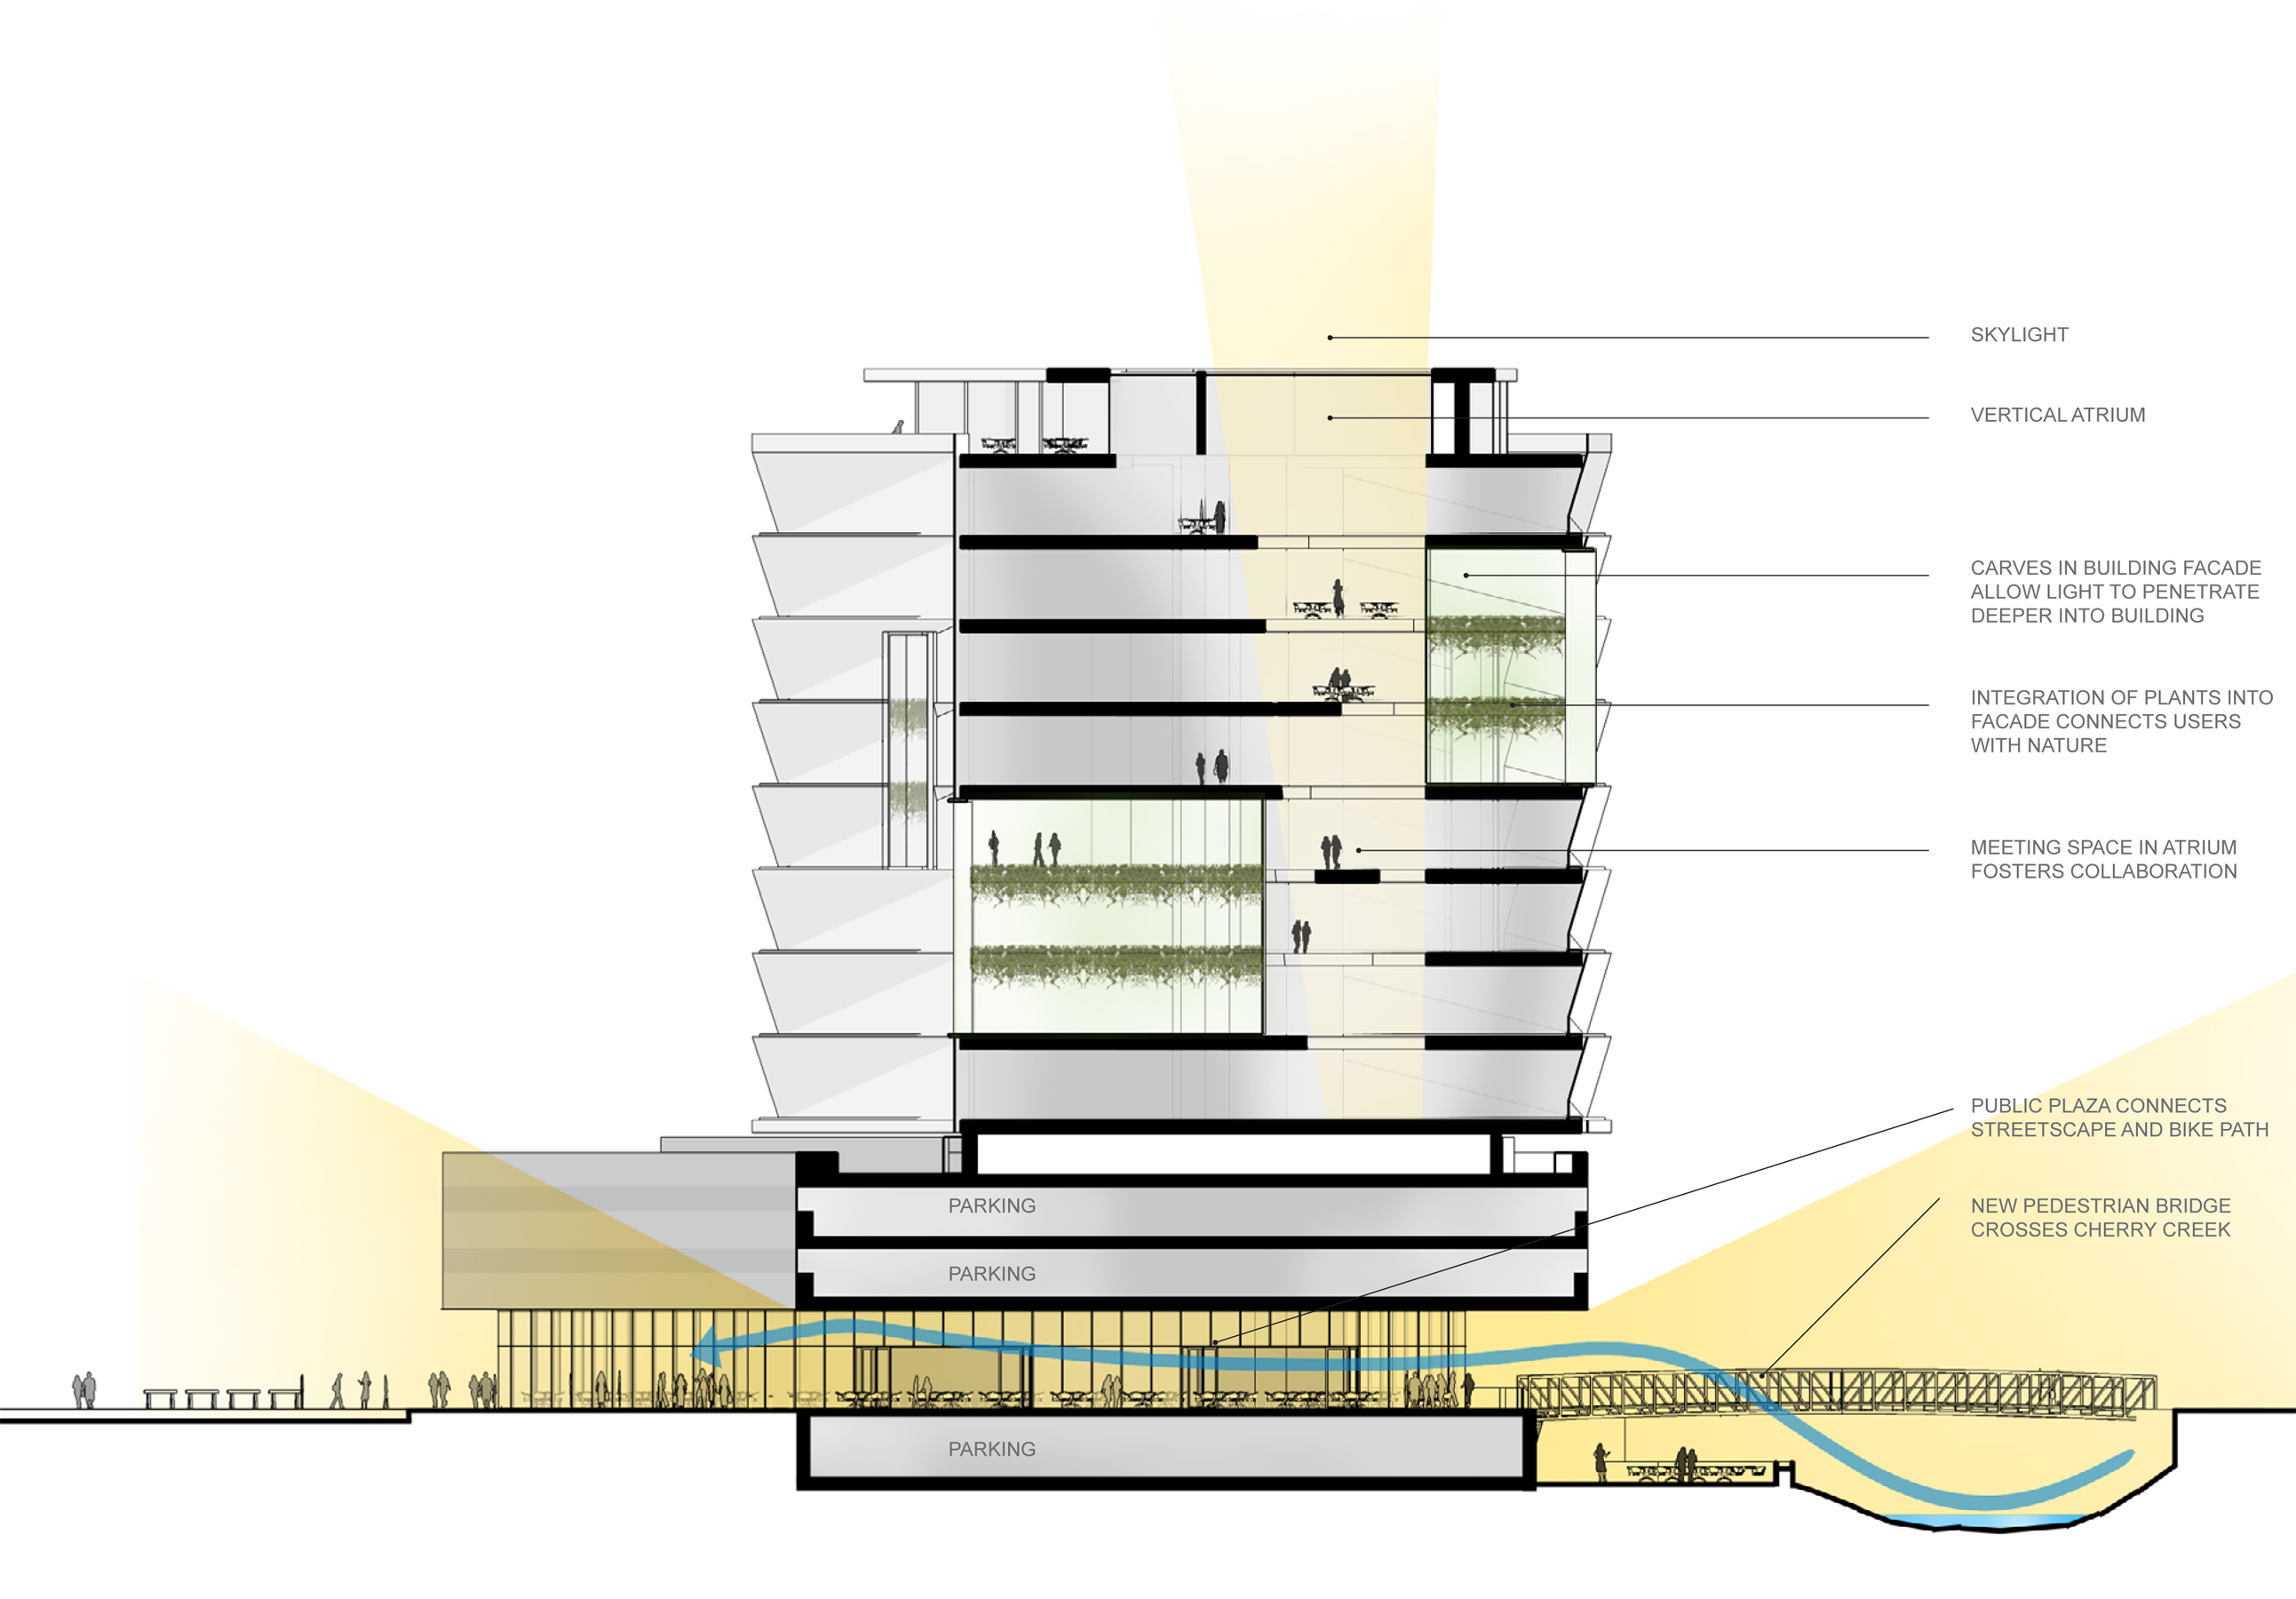 5 14th and Larimer section bioclimatic tower open studio architecture